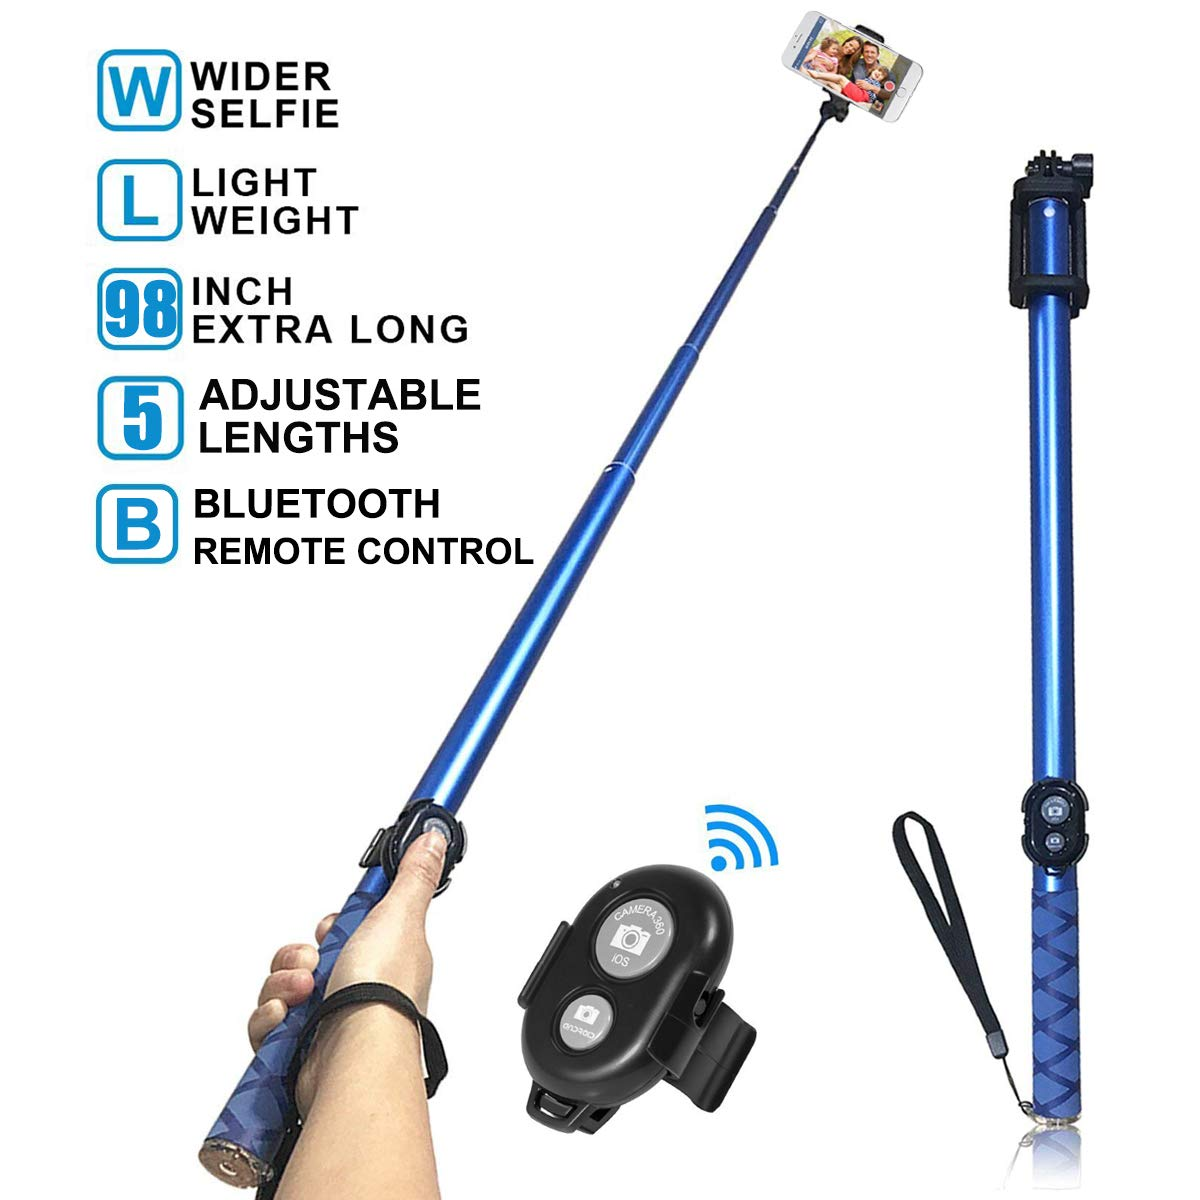 Ultra Long Selfie Stick,Extra Length 98.4 Inch Extendable Self-portrait with Built-in Bluetooth Wireless Remote Shutter for iPhone,Samsung,Huawei All IOS Android Smart Phones